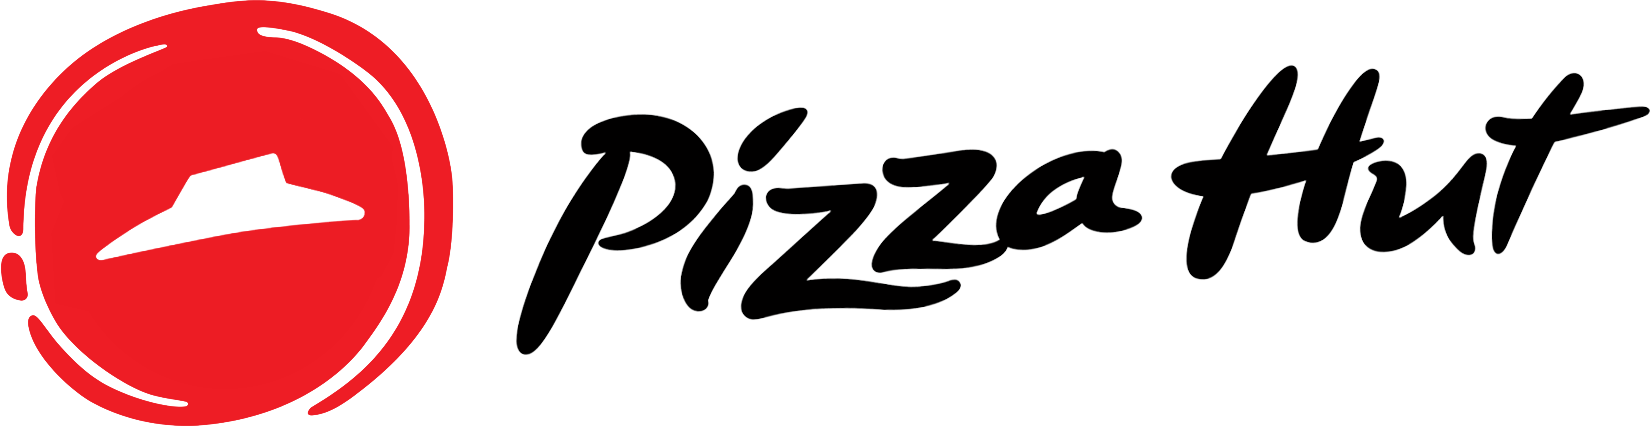 pizza hut png